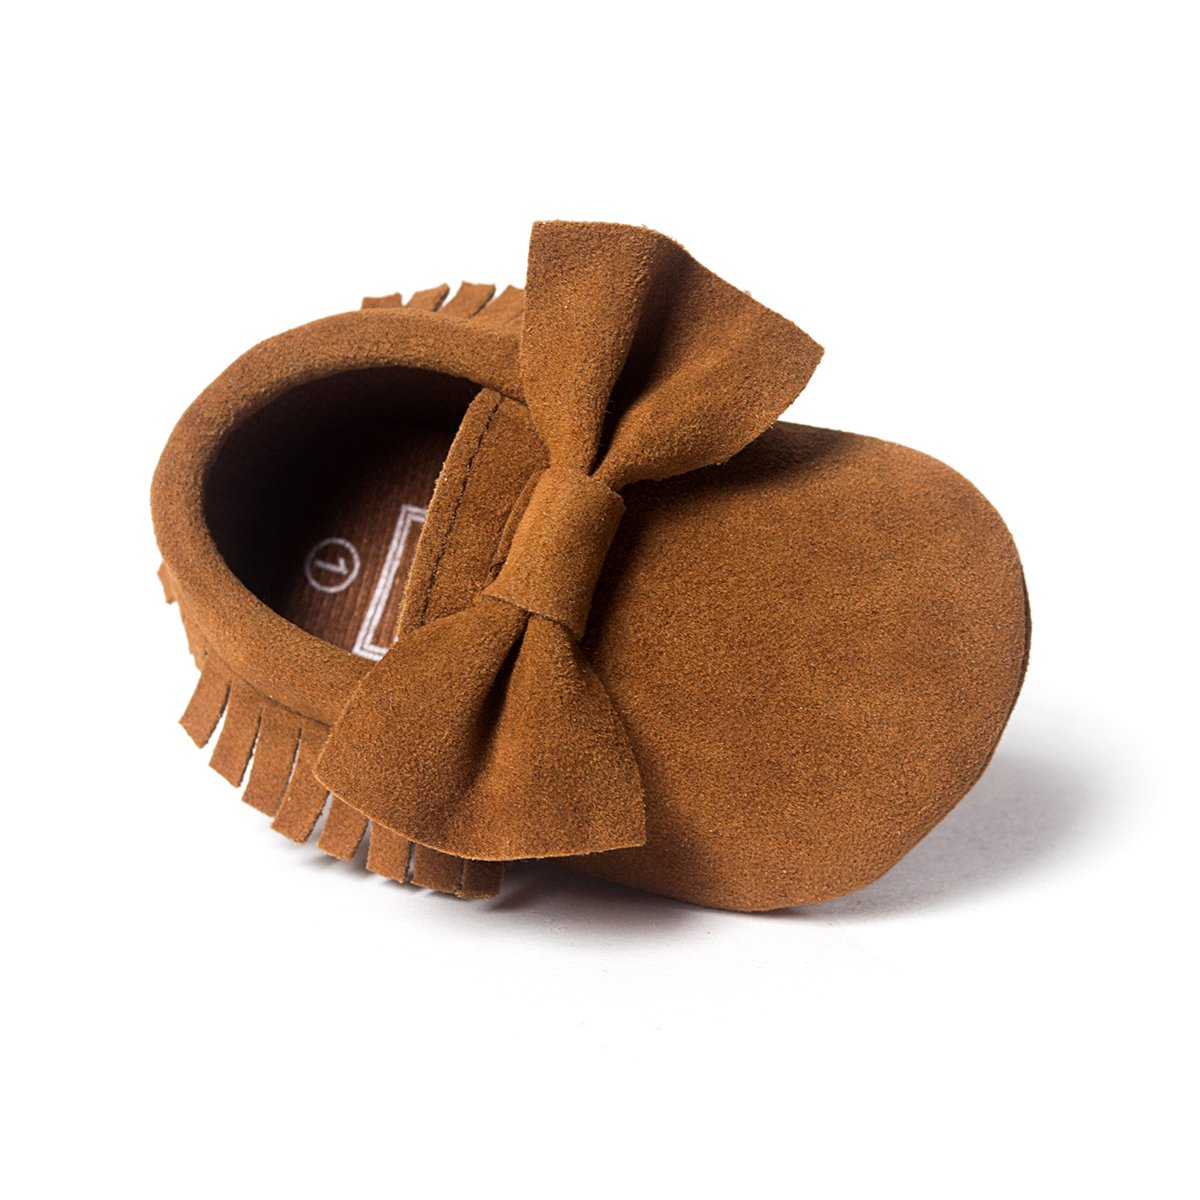 LIVEBOX Infant Baby Girls and Boys Premium Soft Sole Moccasins Tassels Prewalker Anti-Slip Toddler Shoes (M: 6~12 Months, Bow-Coffee)